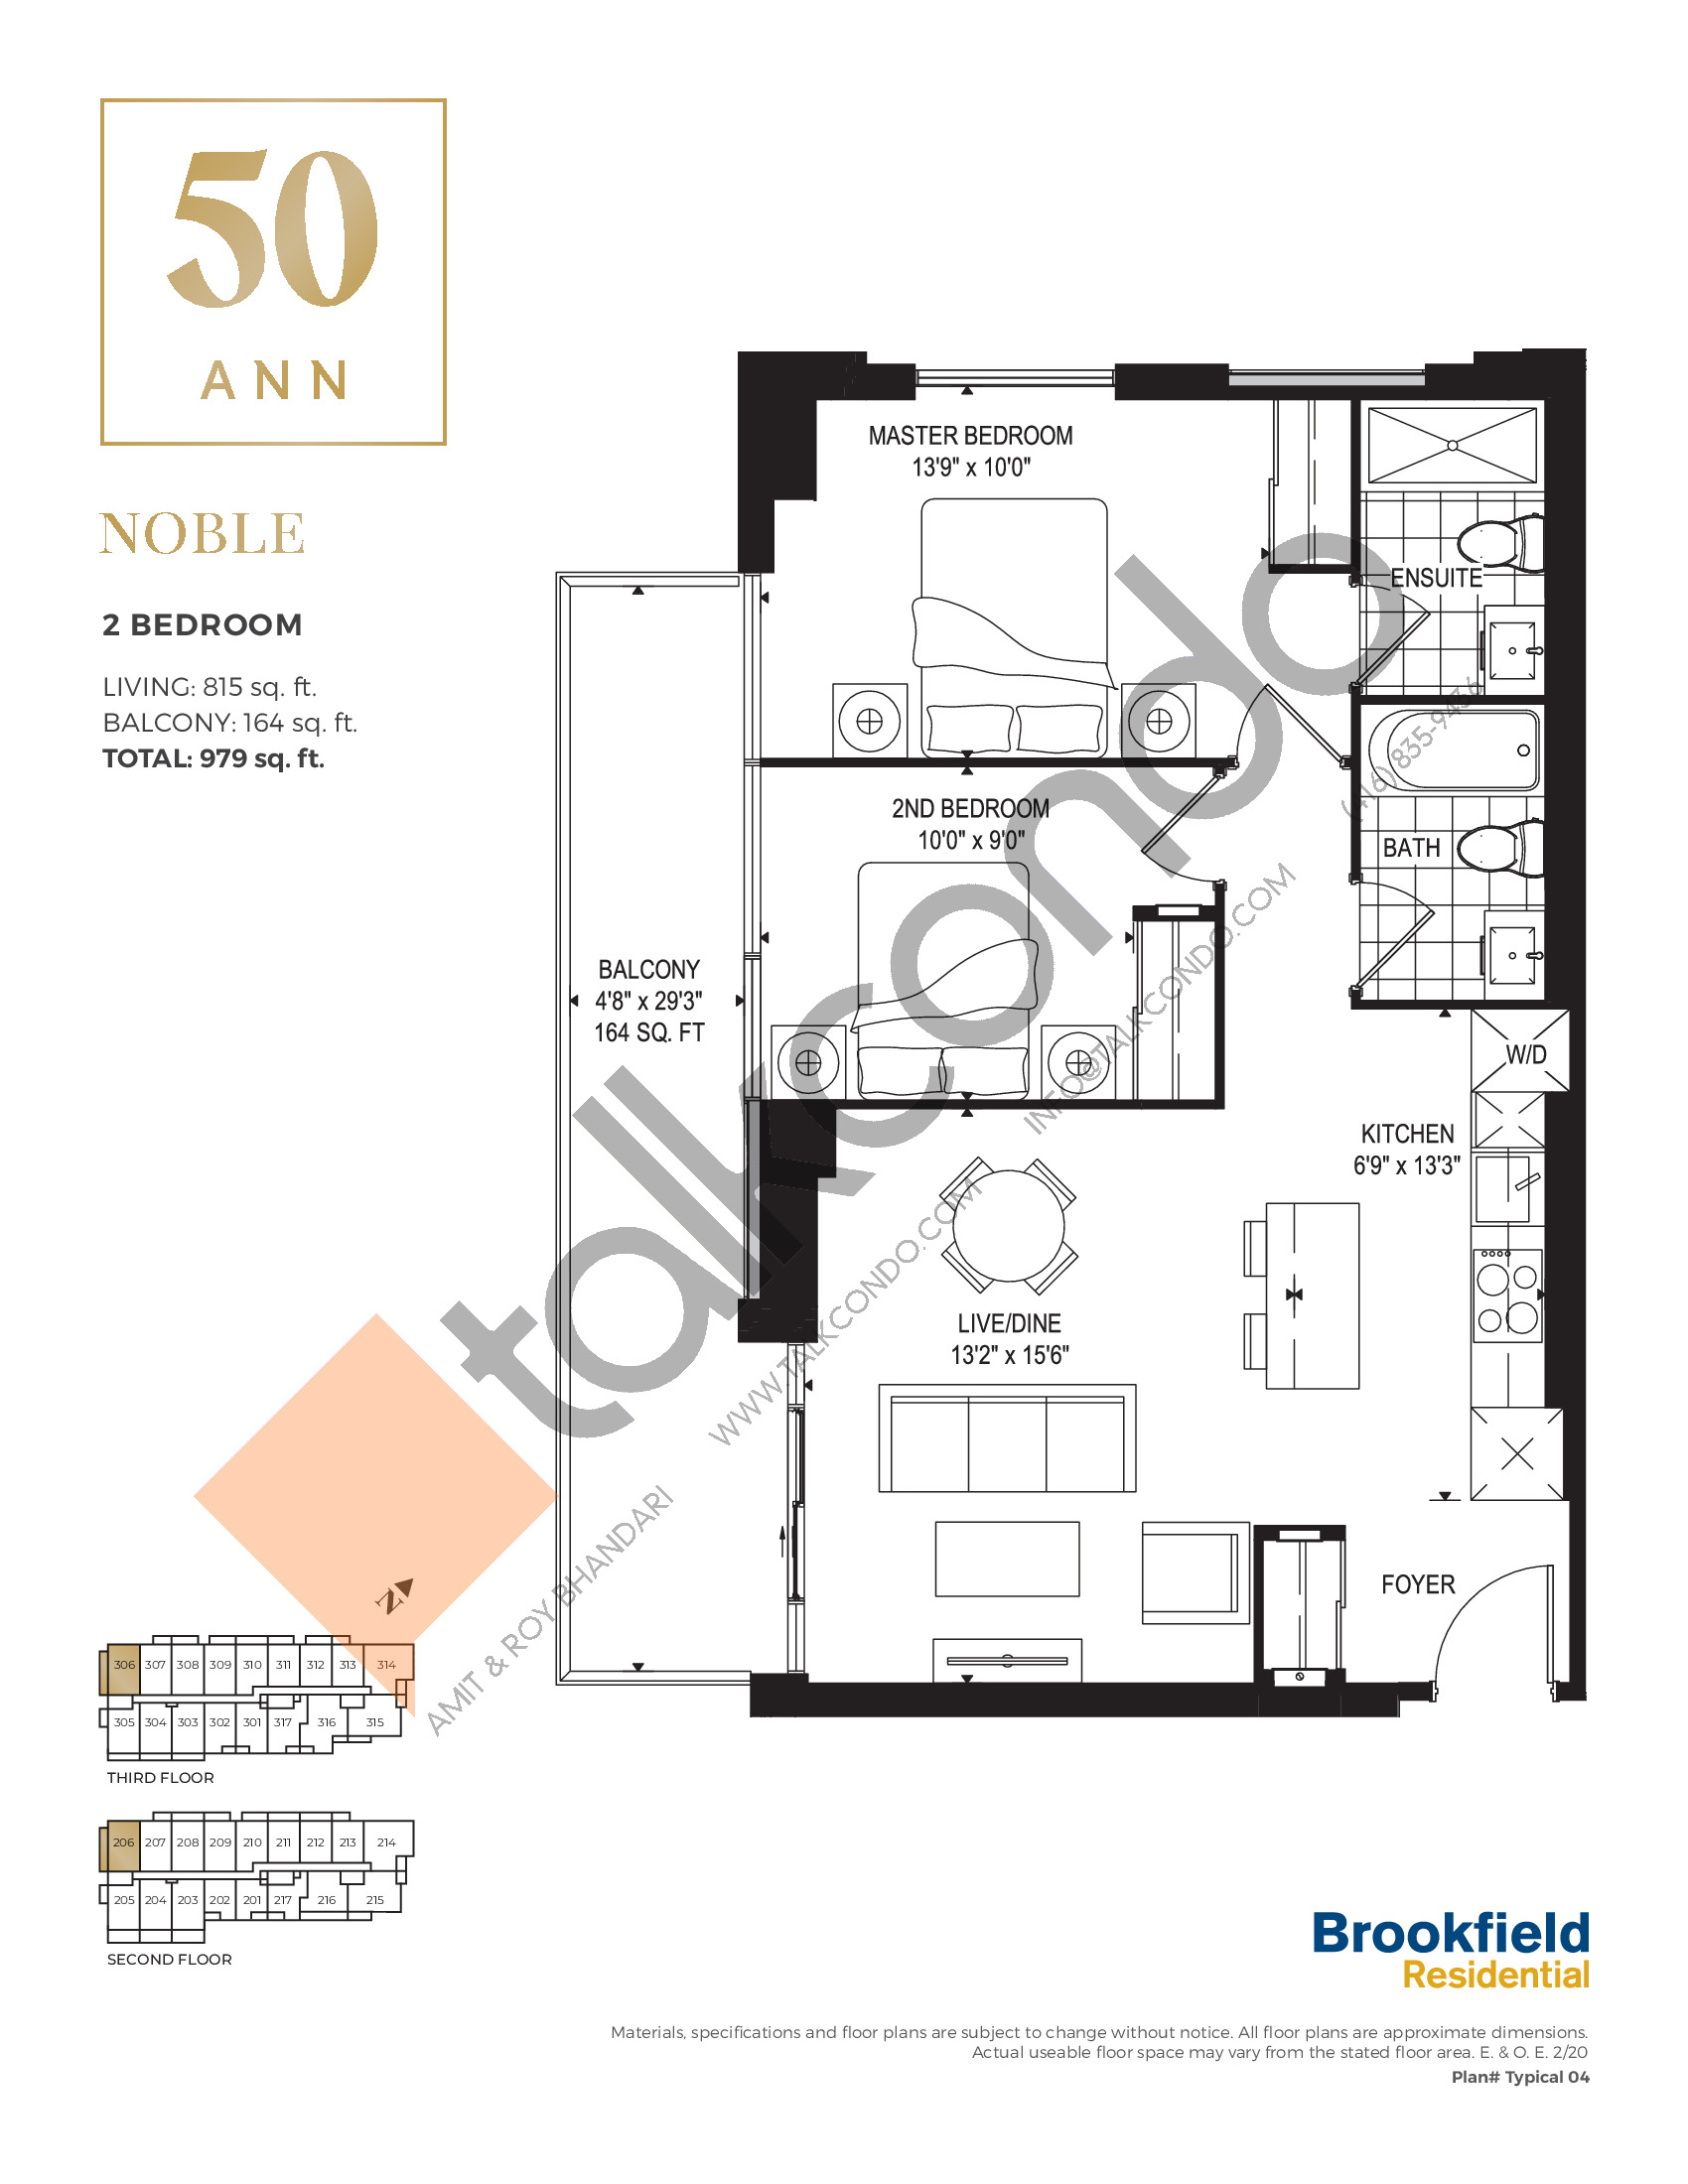 Noble Floor Plan at 50 Ann Condos - 815 sq.ft